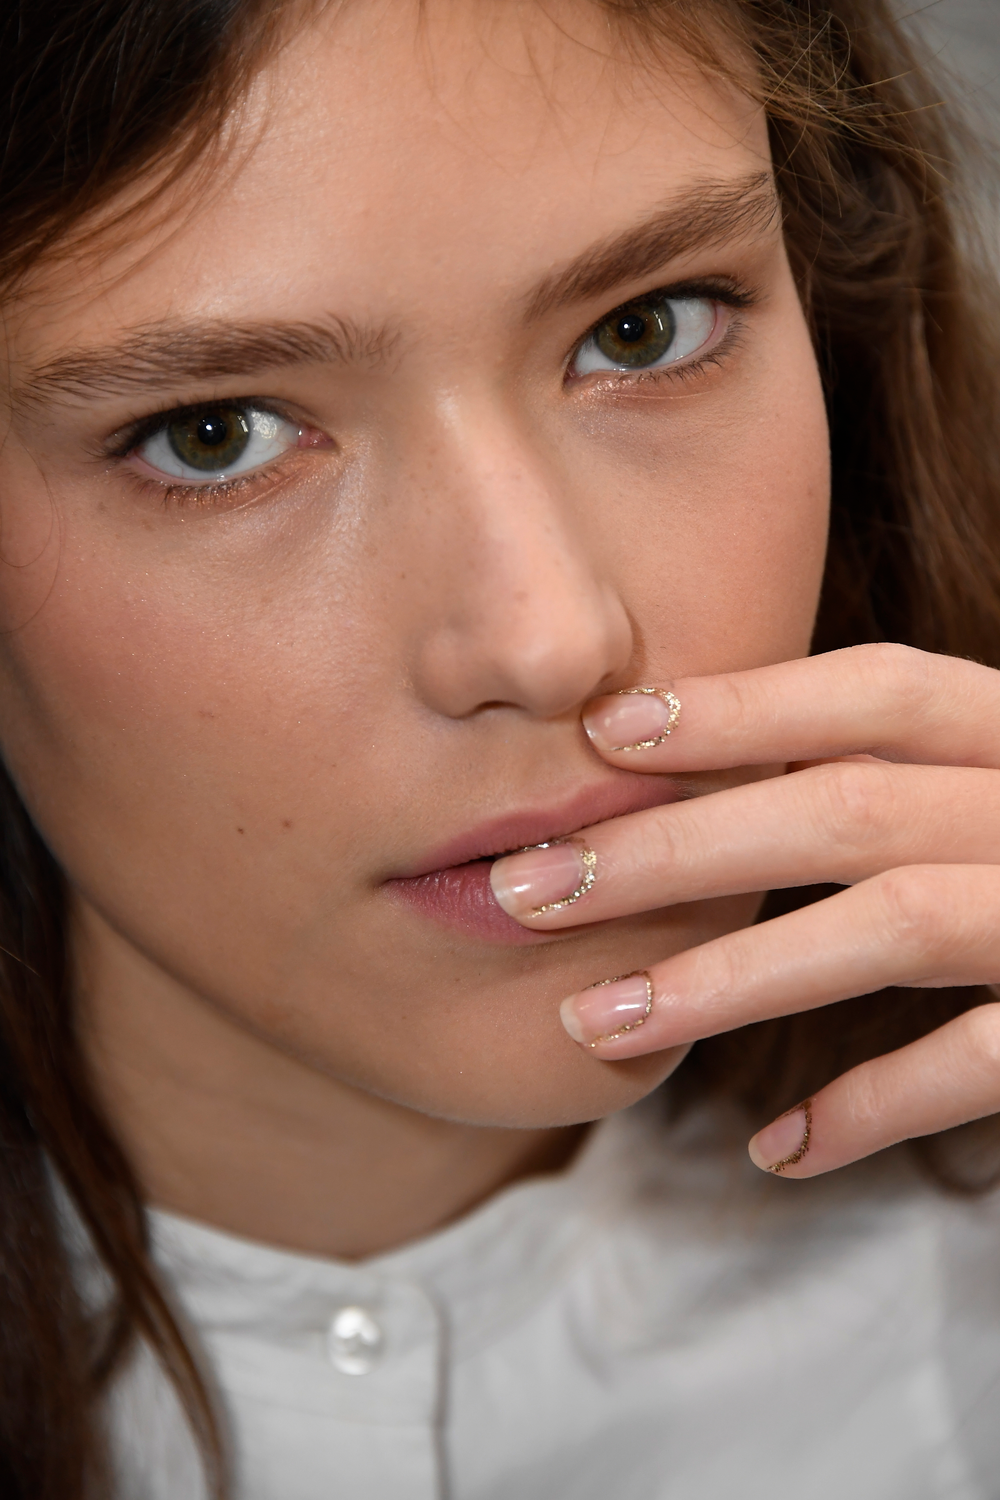 <p>The vision for nails at Rodarte was cuticle jewelry by Morgan Taylor.</p> <p>Photo credit: Courtesy of Morgan Taylor Lacquer</p>